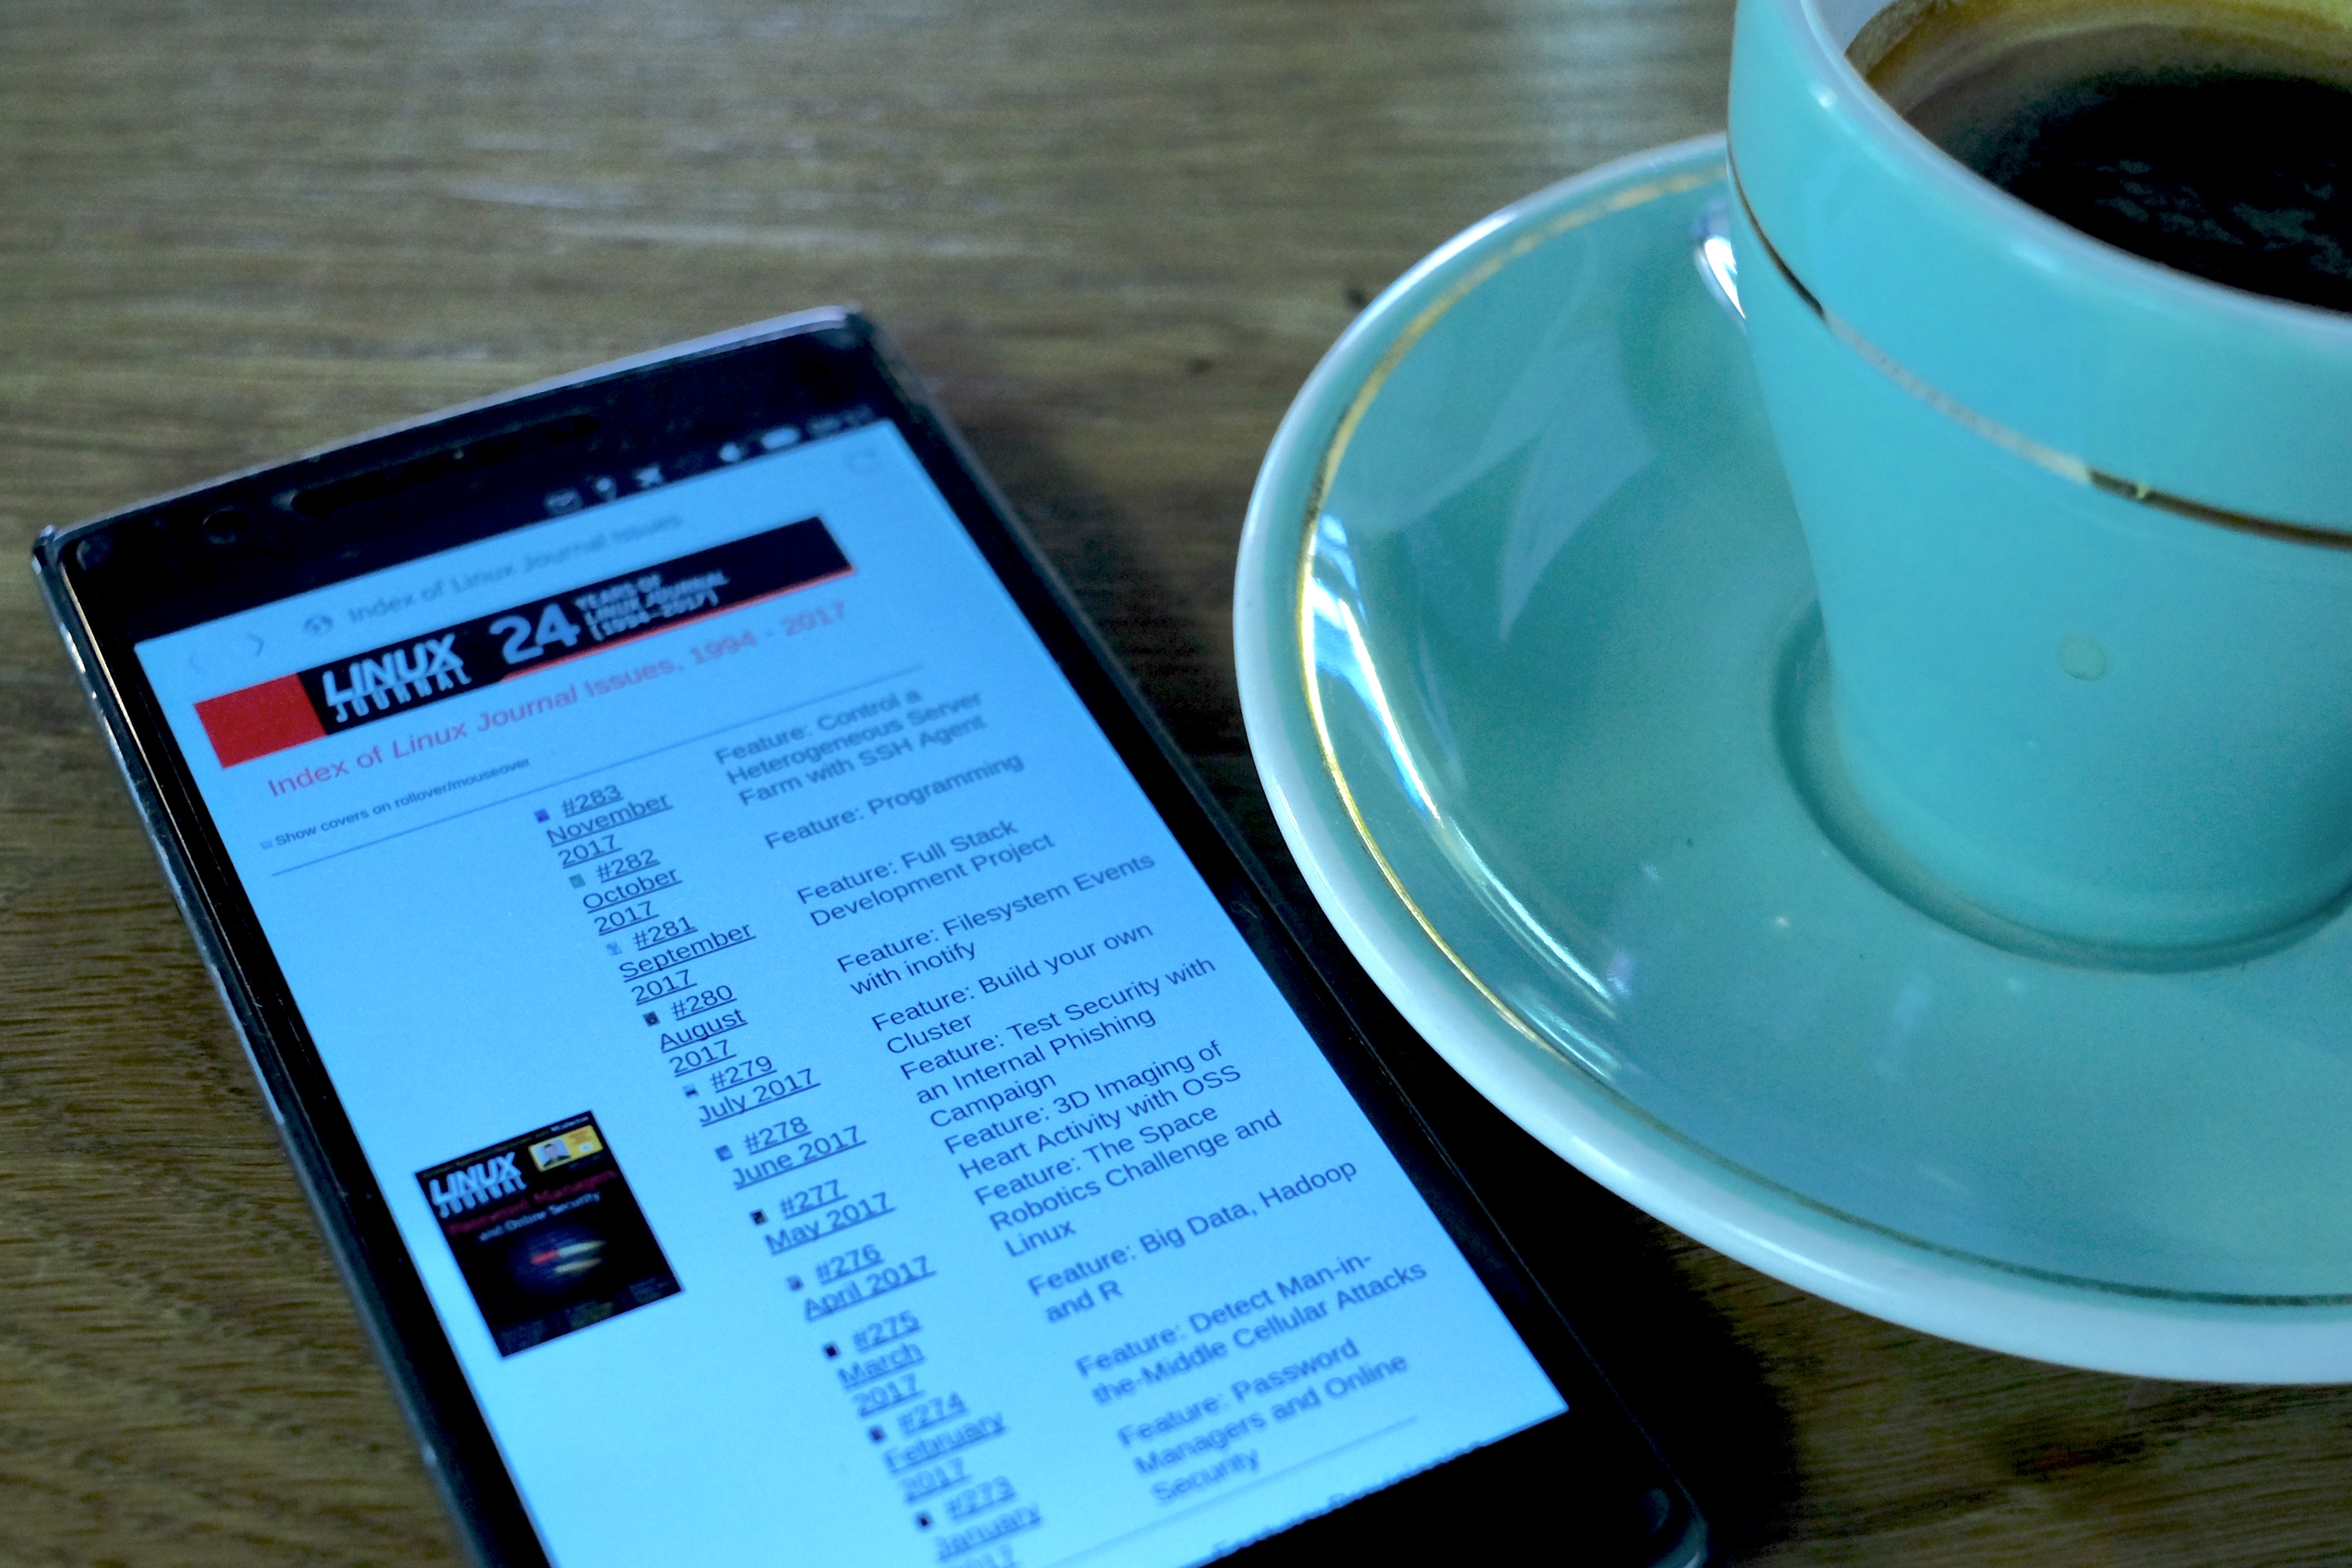 Linux Journal on Ubuntu Touch, with a good cup of coffee